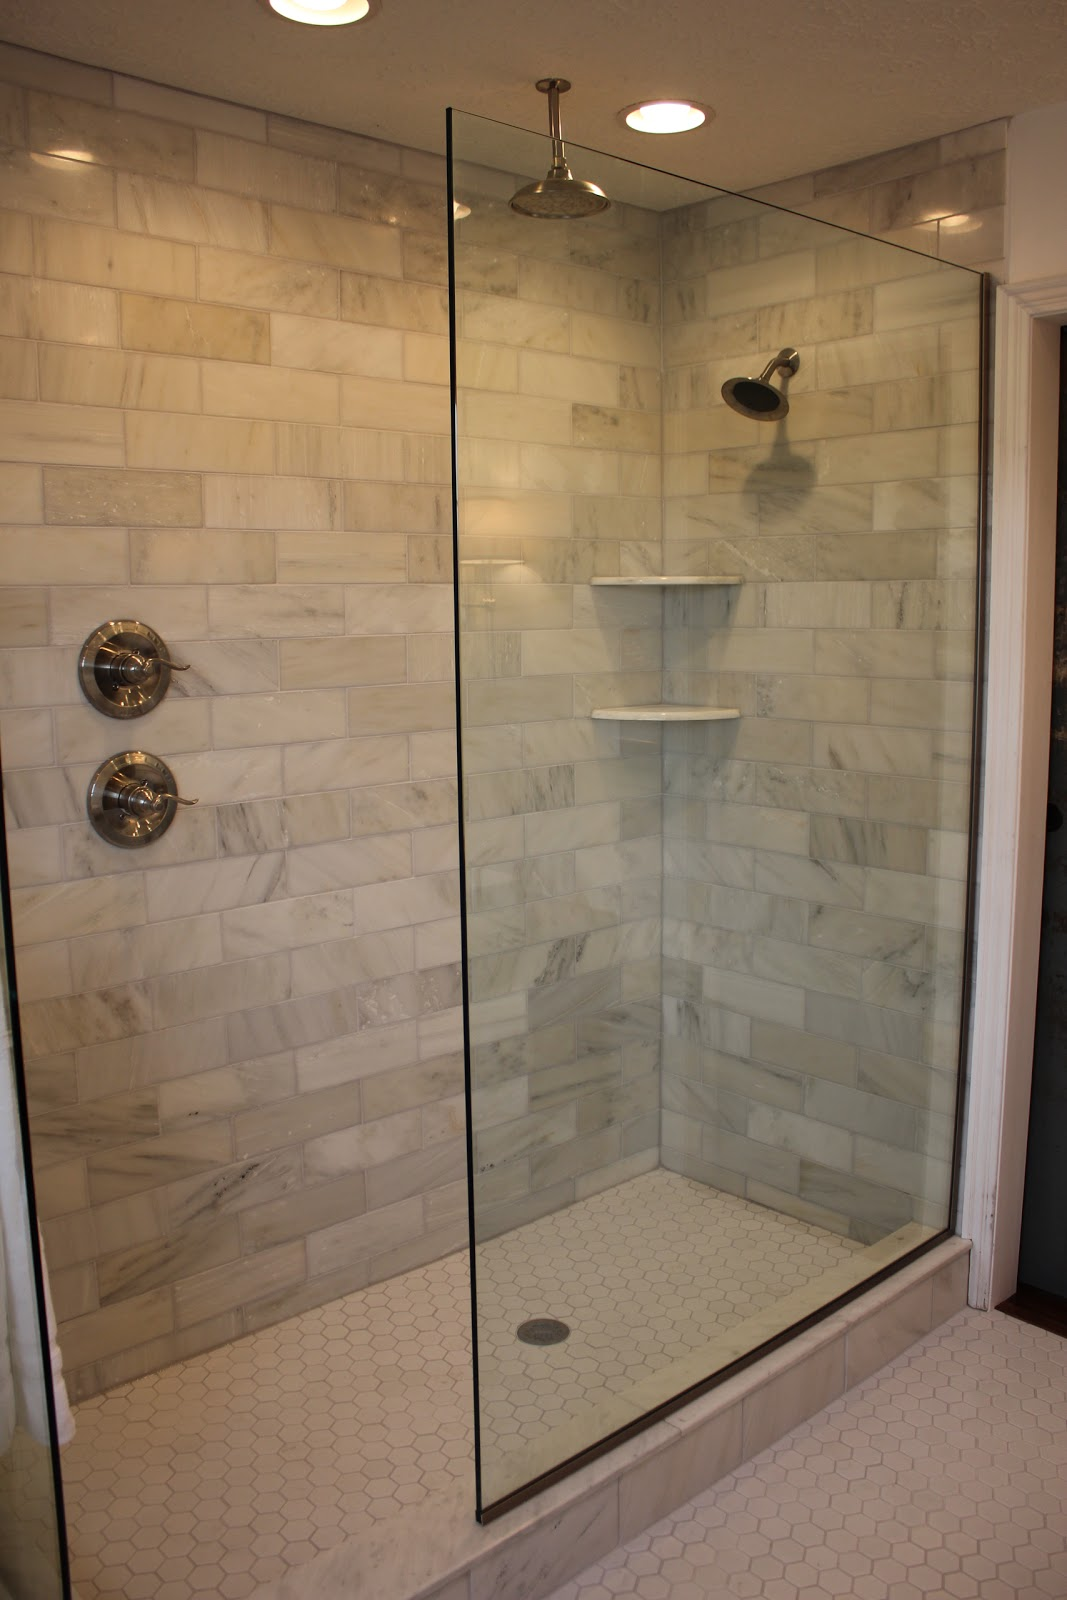 Design decor and remodel projects for Bathroom and shower ideas